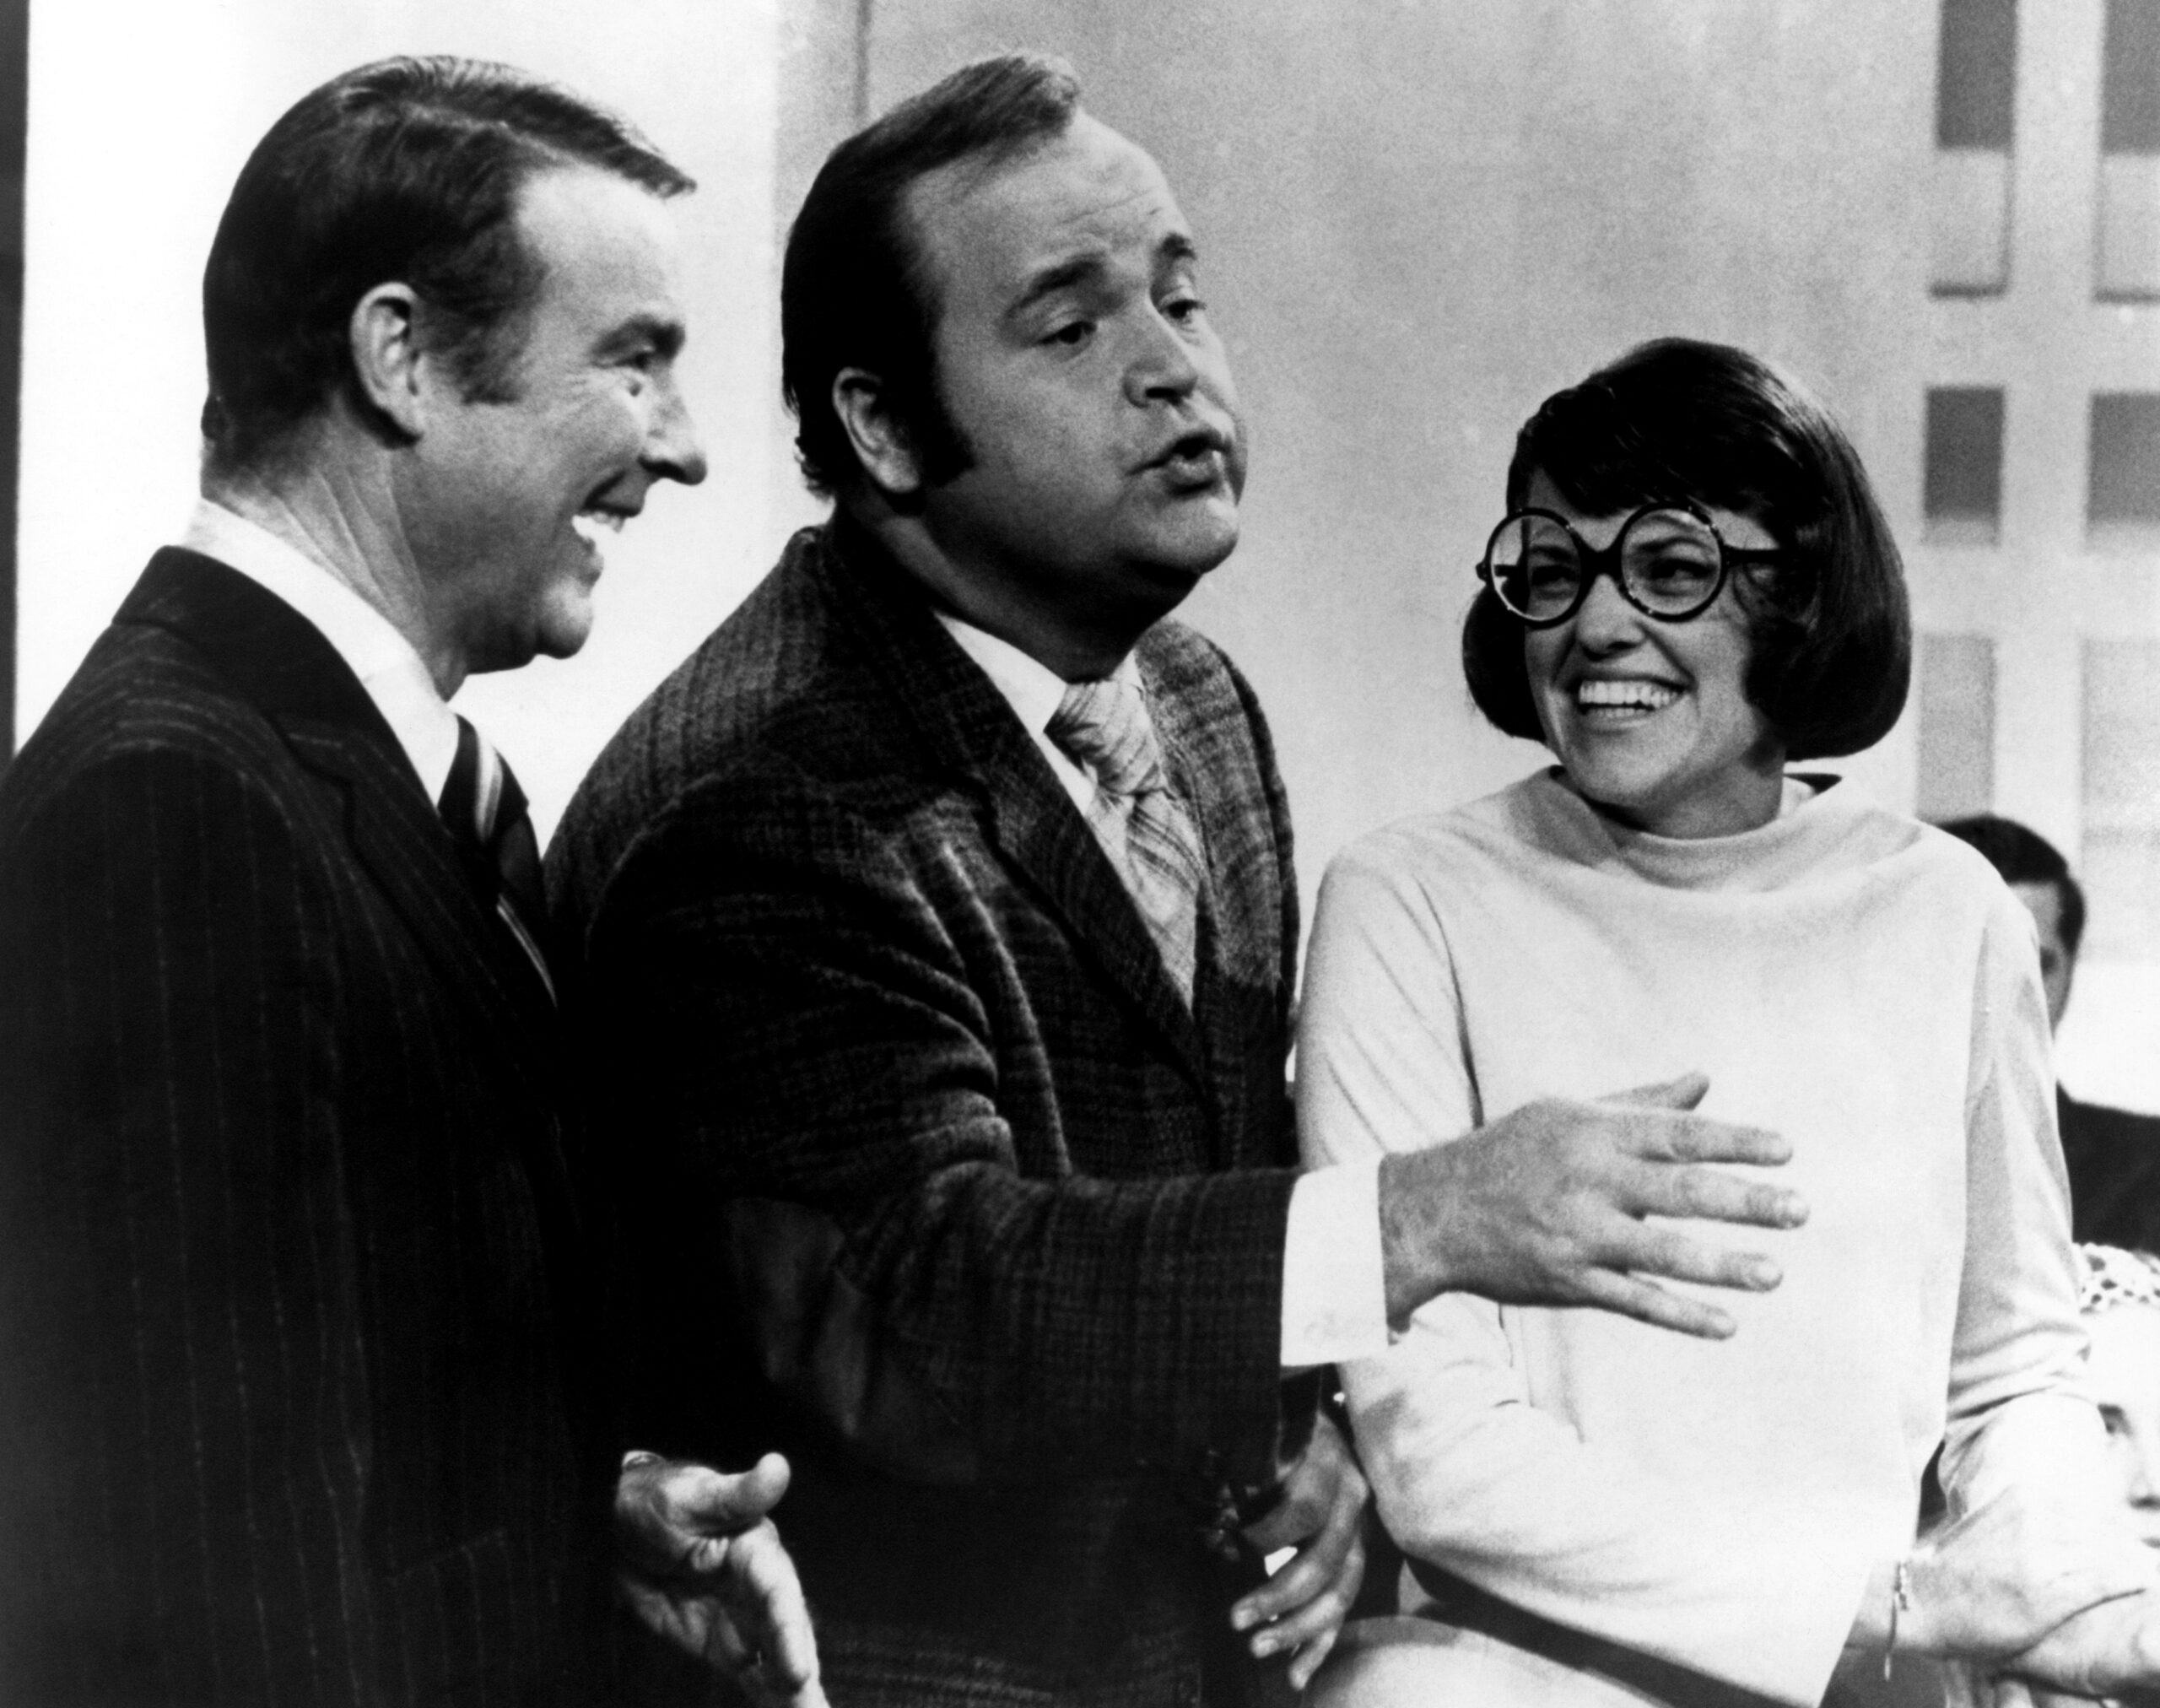 Ralph Edwards, Dom DeLuise with wife Carol DeLuise